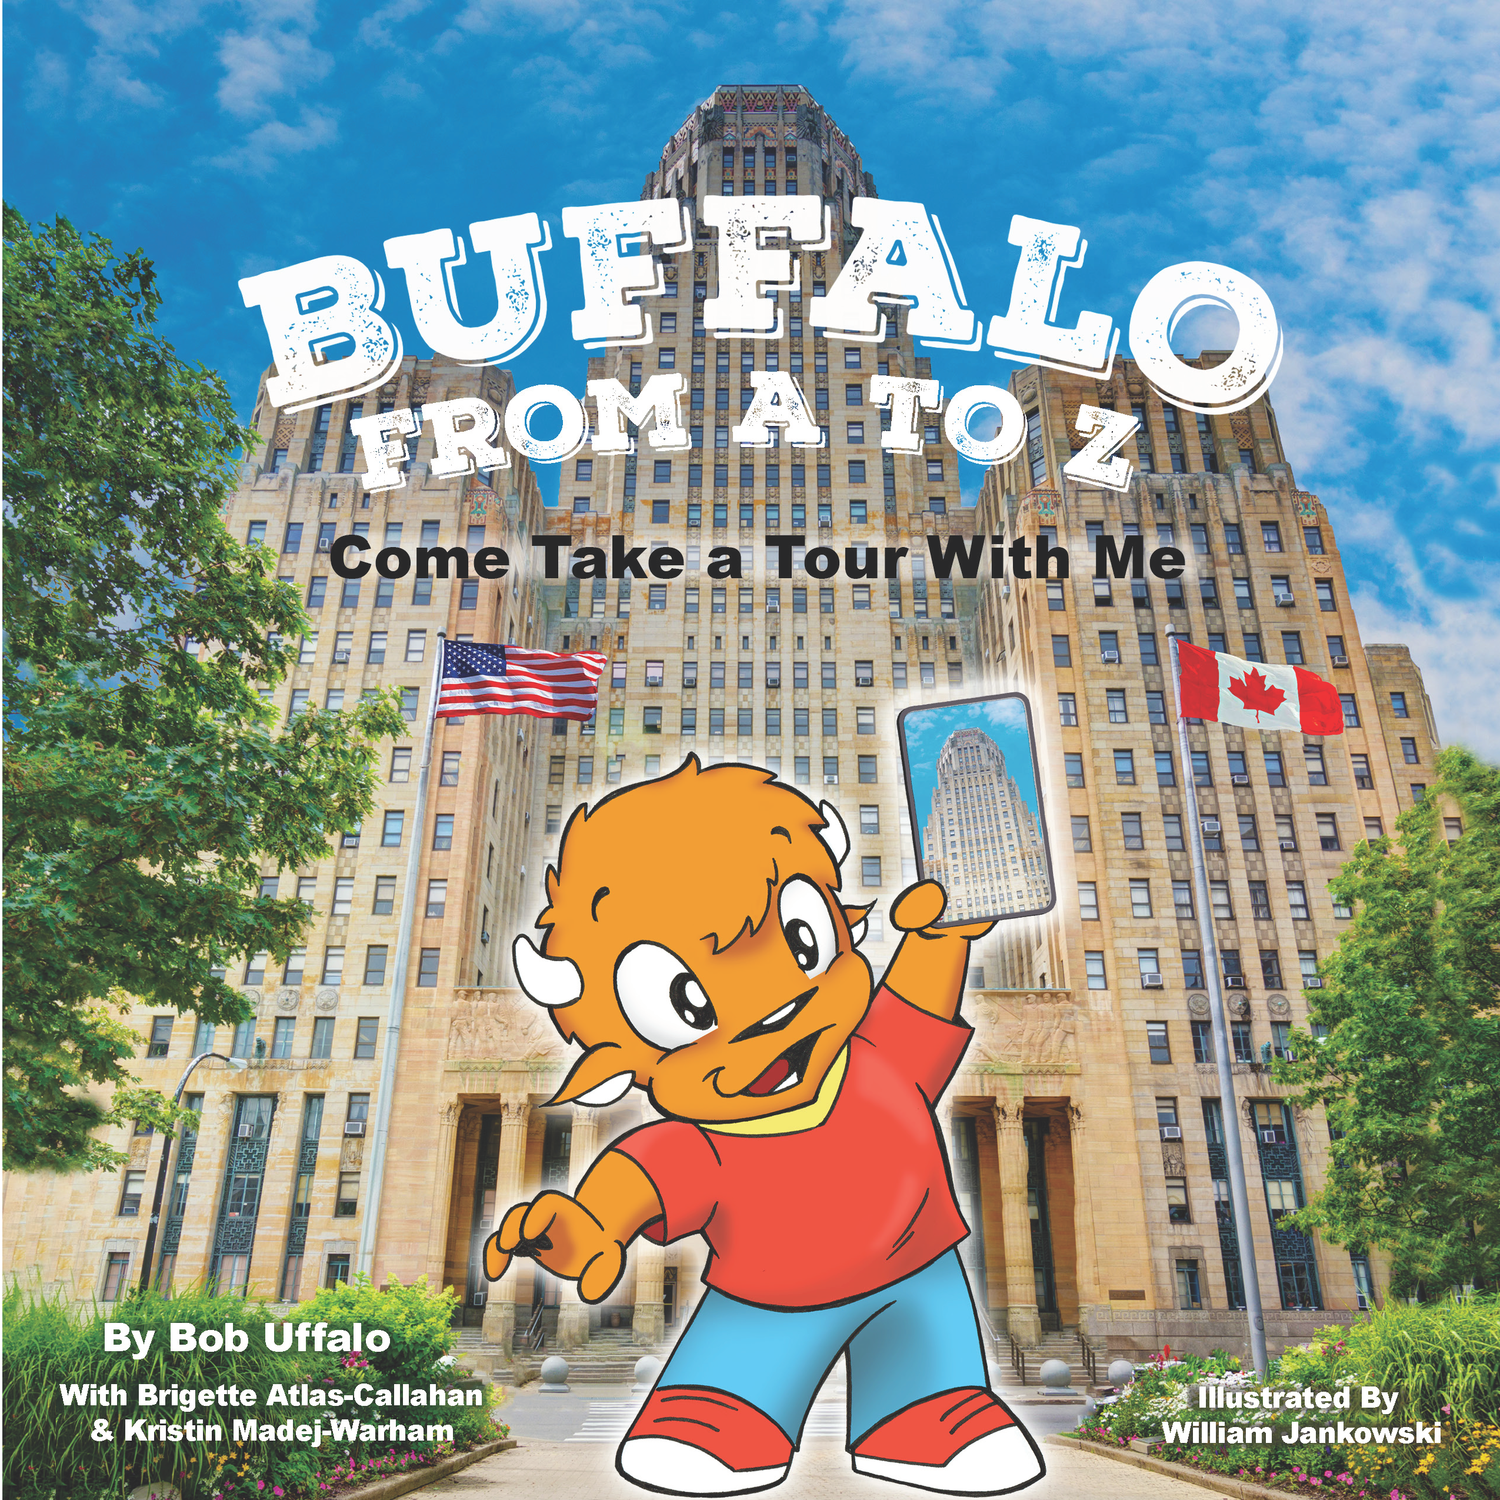 Buffalo From A-Z Come Take A Tour With Me (soft cover)